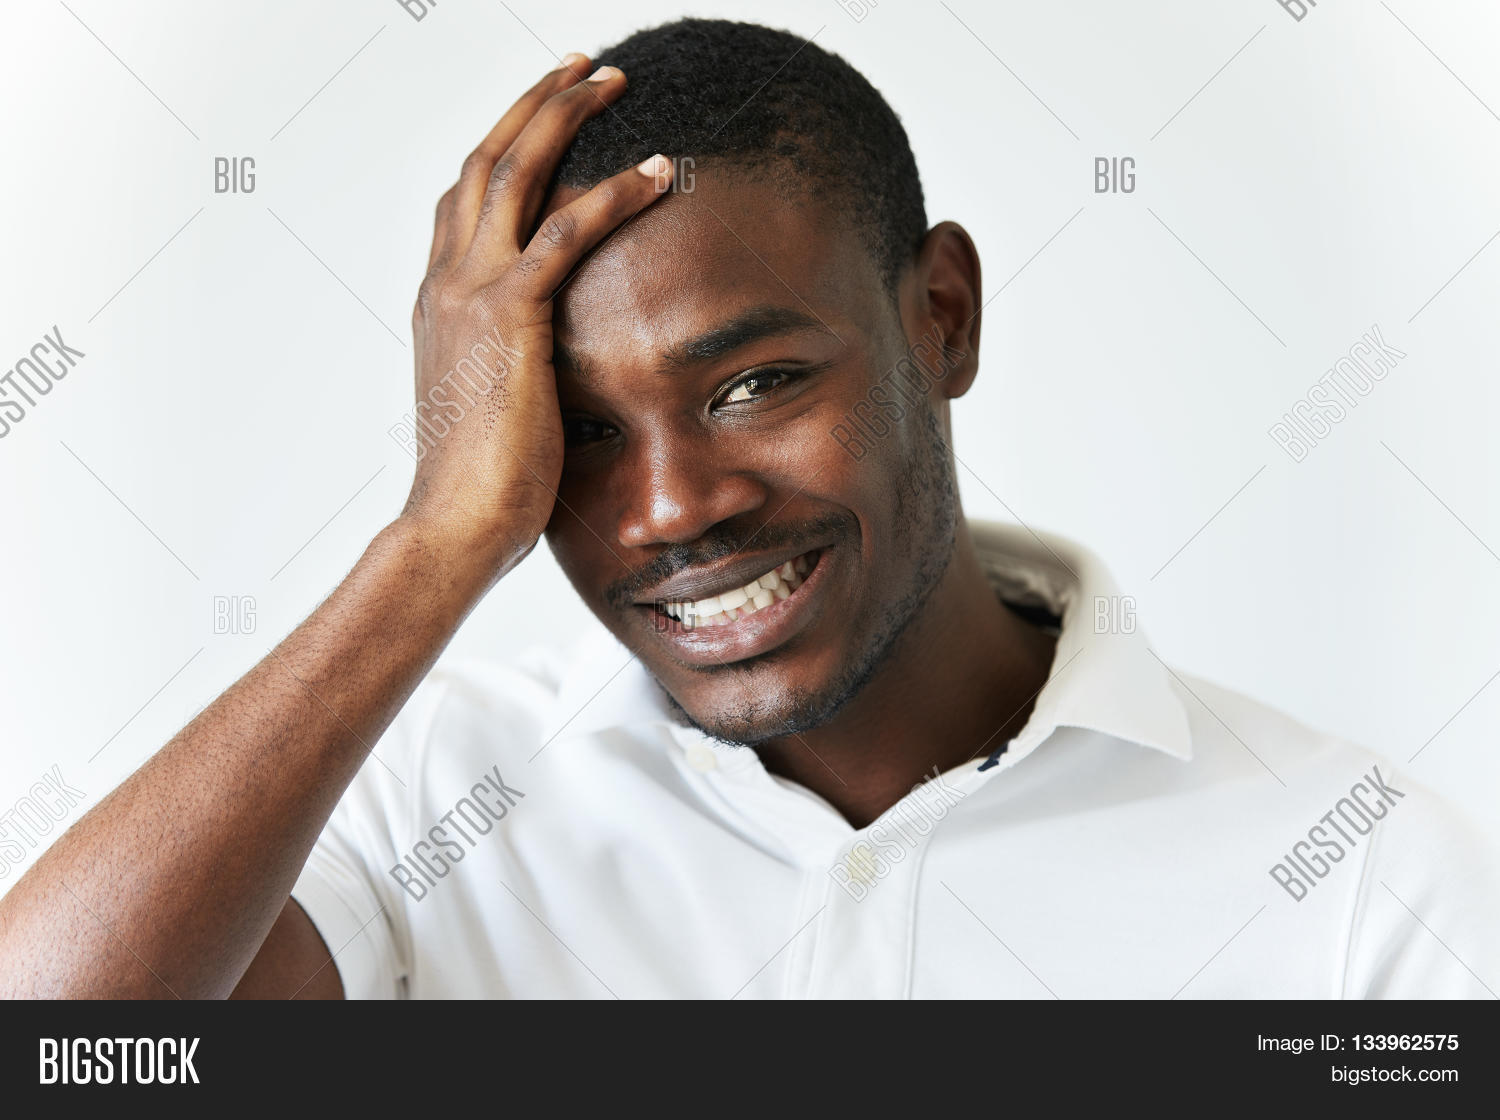 7a98785eb Young handsome African man with healthy skin and short hair-cut wearing  white T-shirt touching his head looking at the camera and smiling with  confused ...